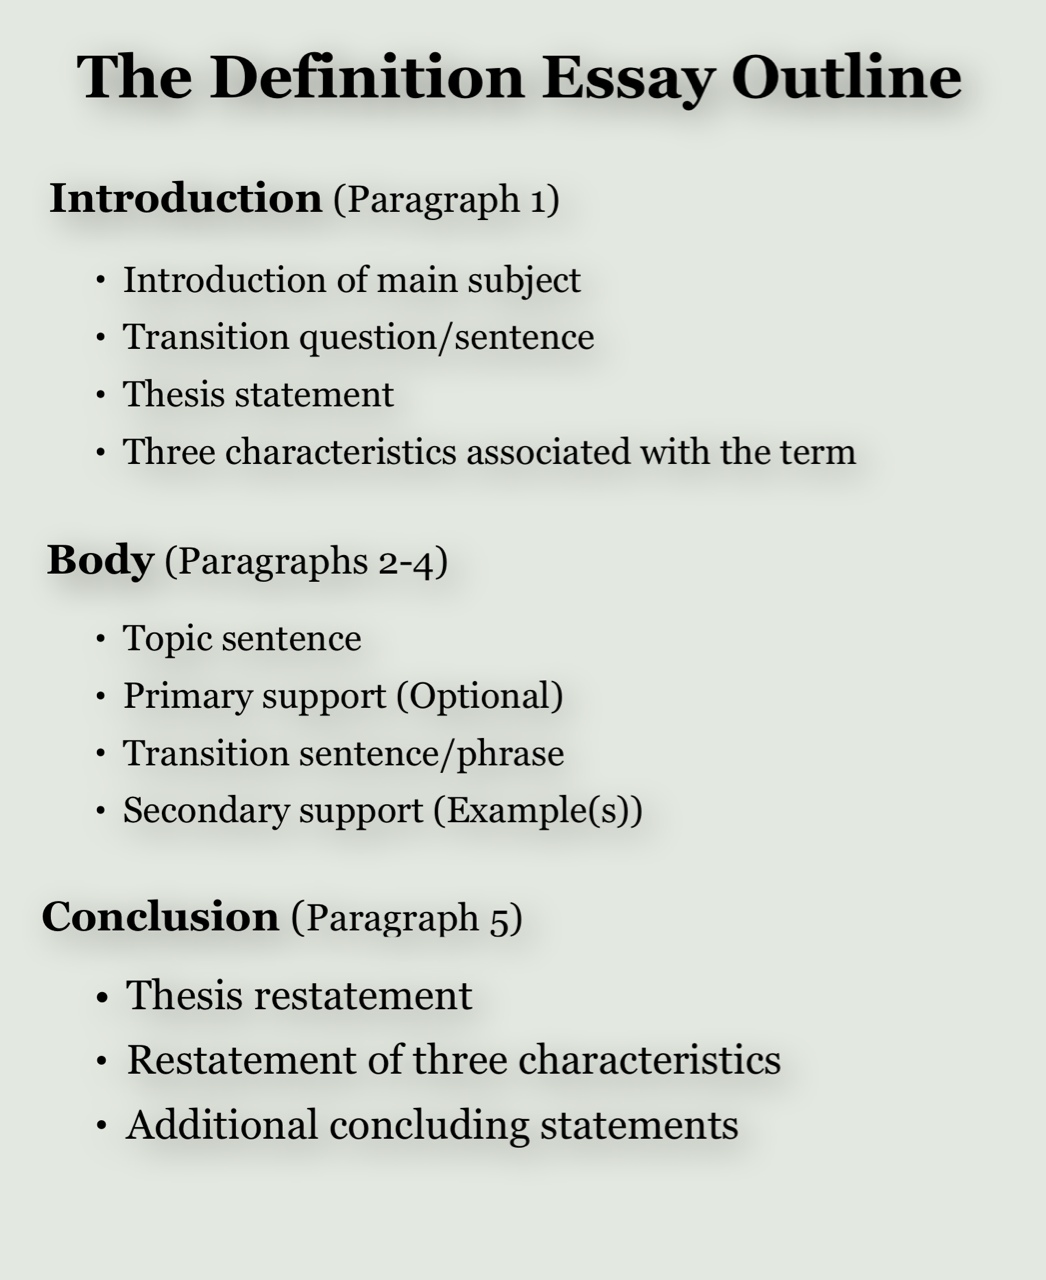 outlining essays Essay outline 11 november 2016 writing write an analytical essay: read khaled hosseini's novel, the kite runner, take thematic notes in response to the reading, and write a formal essay to.